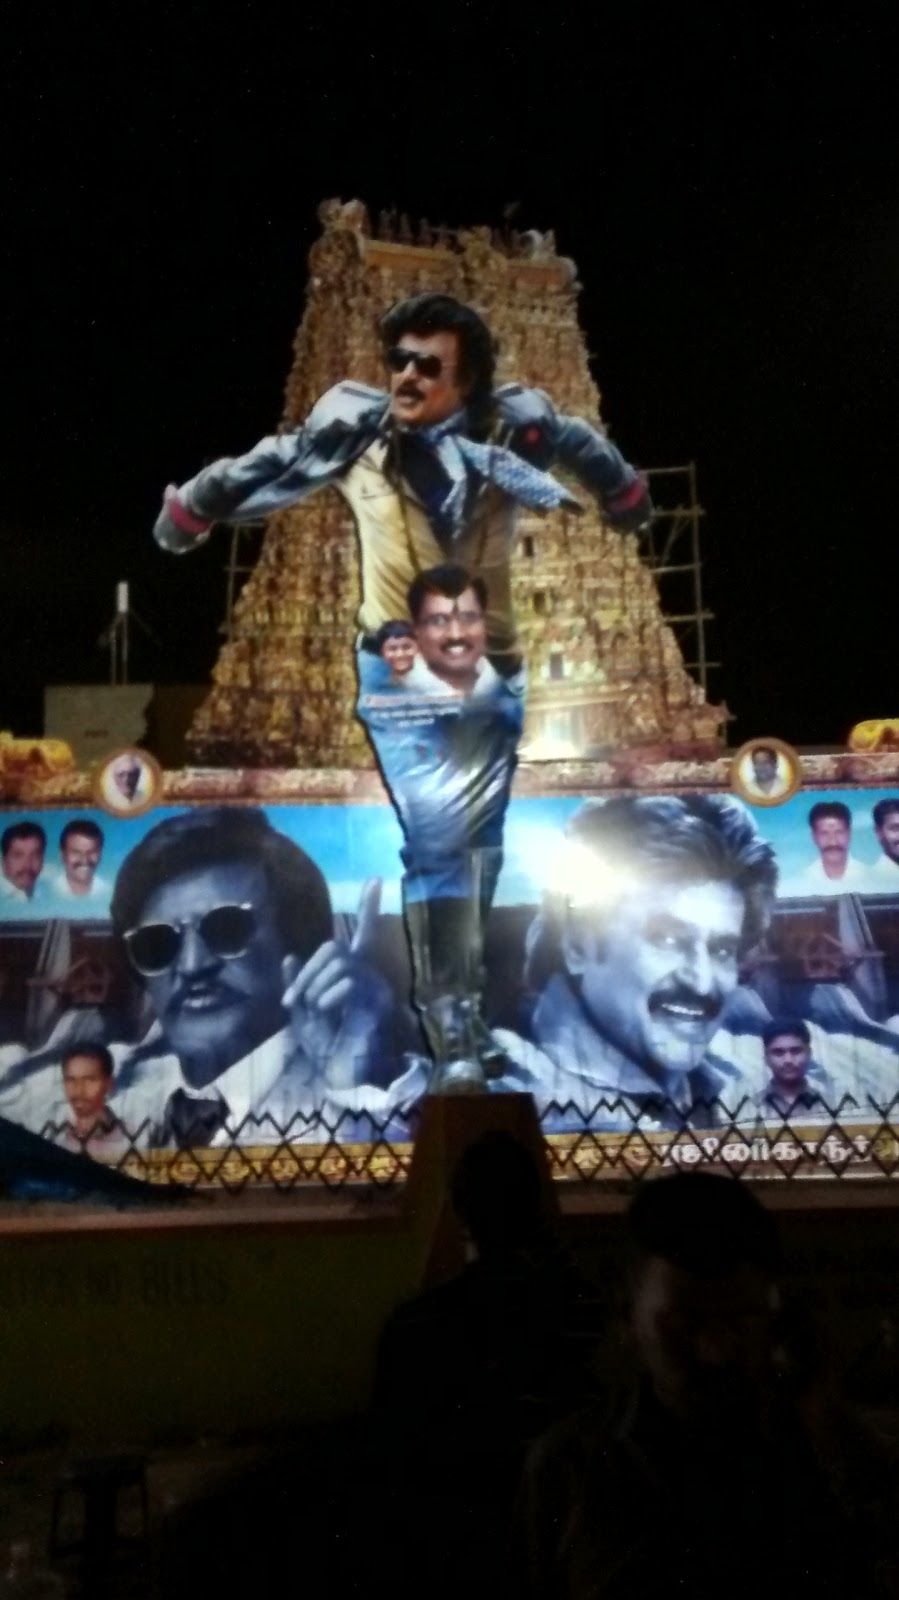 Super Star Rajini Poster in Hosur